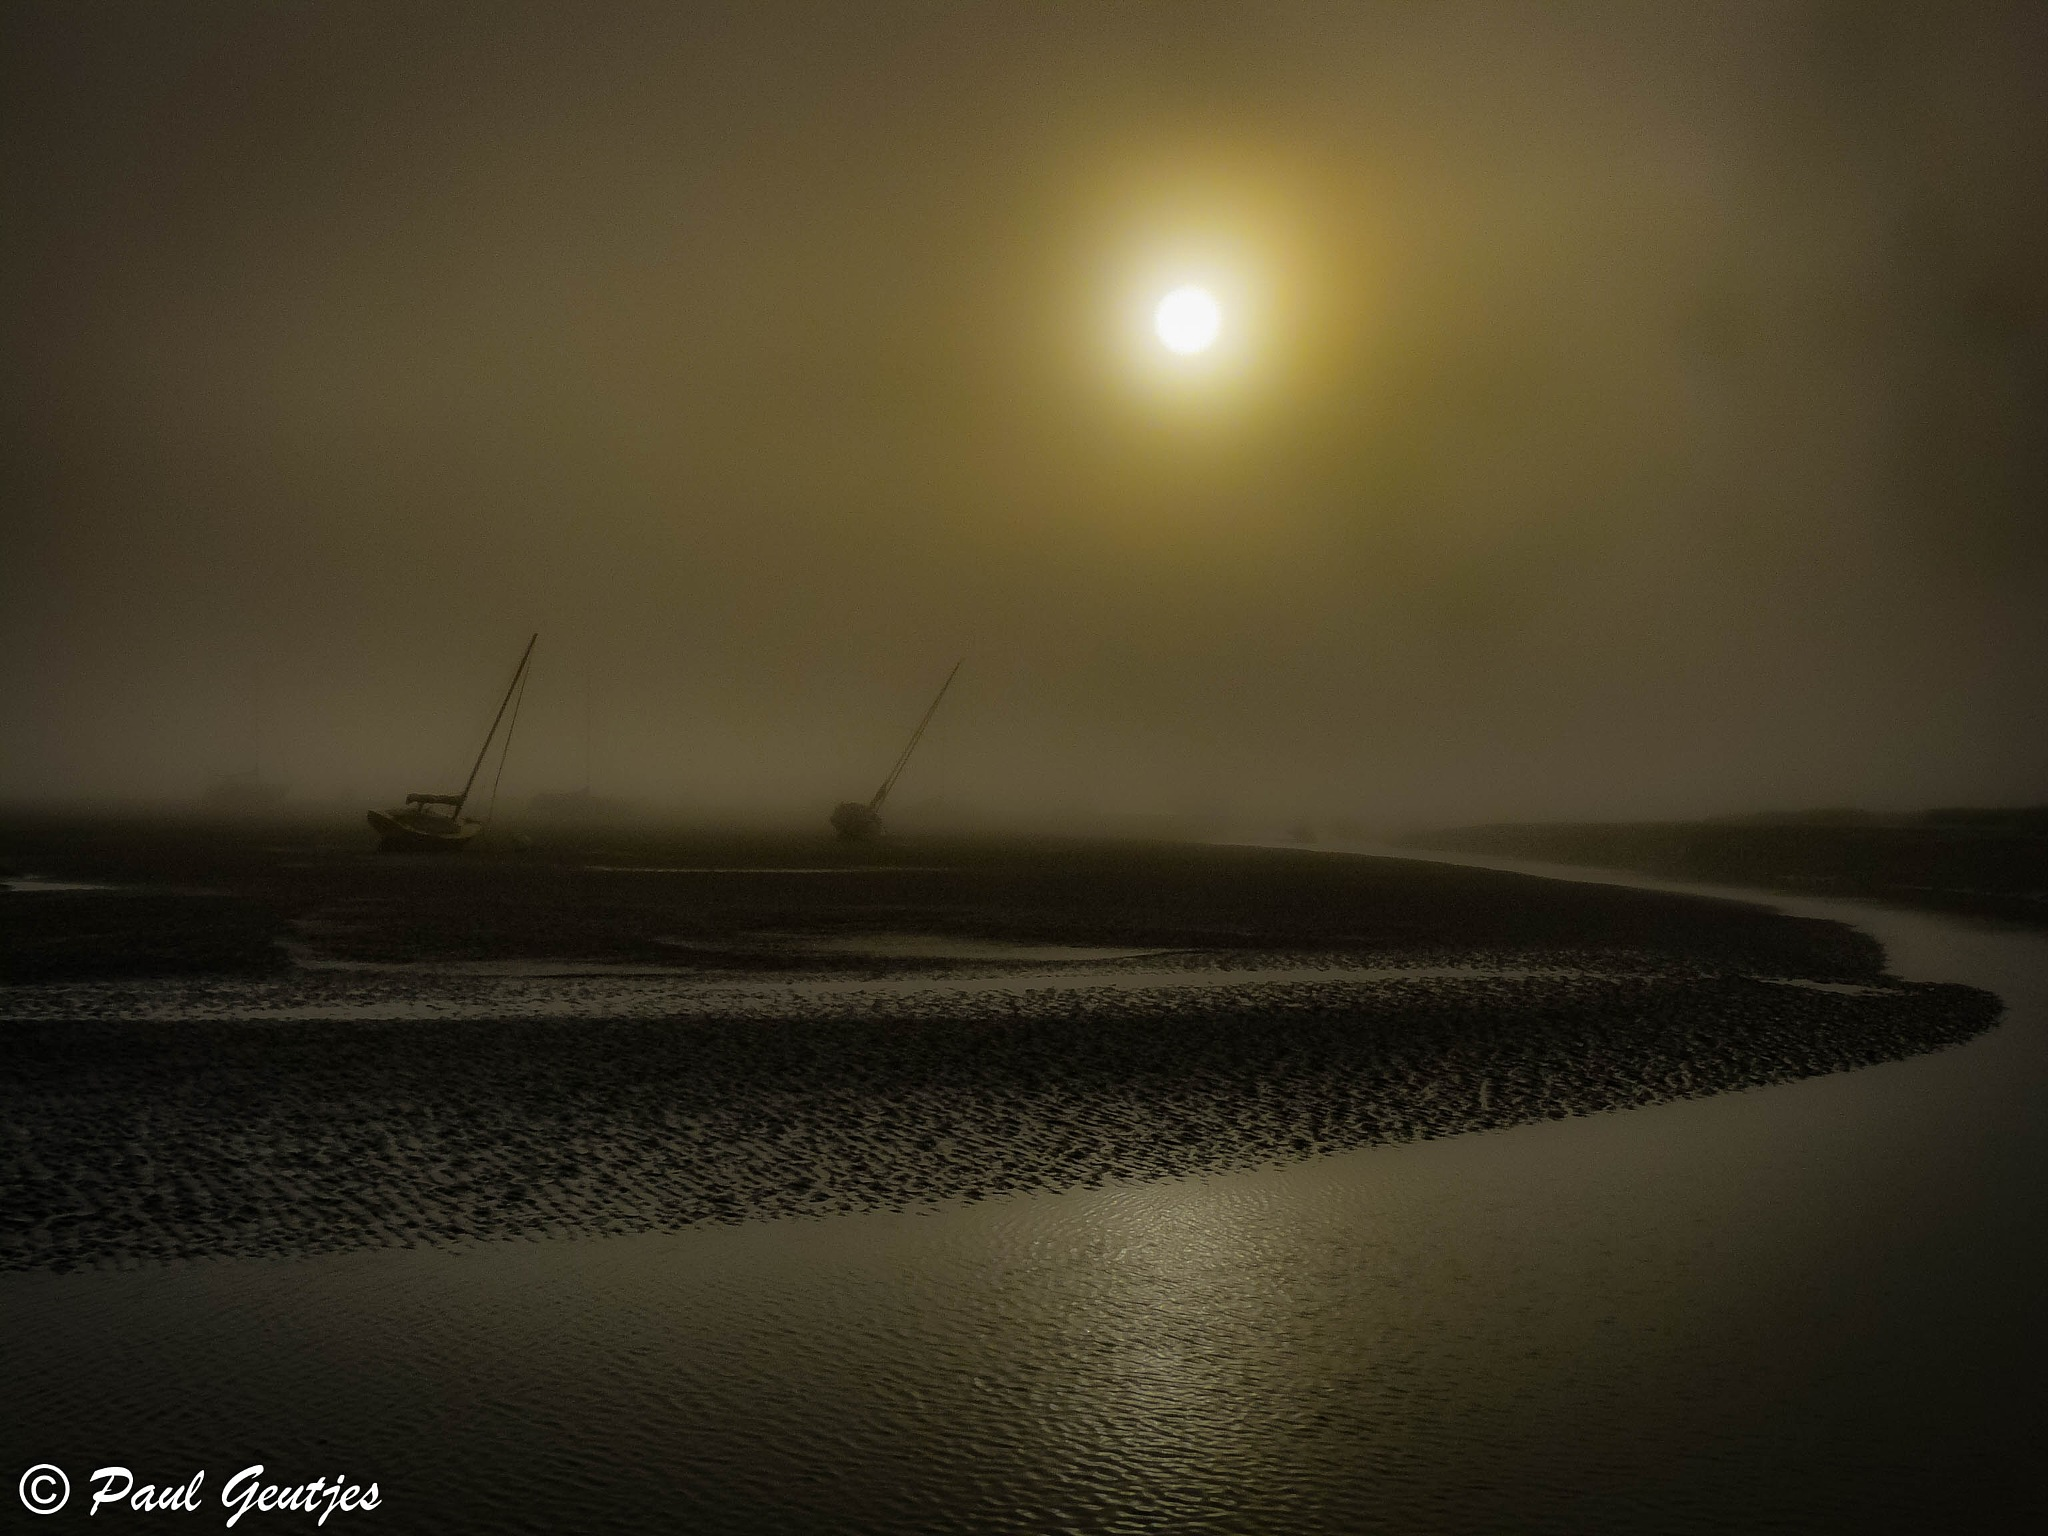 Sailing boats stuck in low tide and in the fog. Serie 5 of 8 by Paul Geutjes